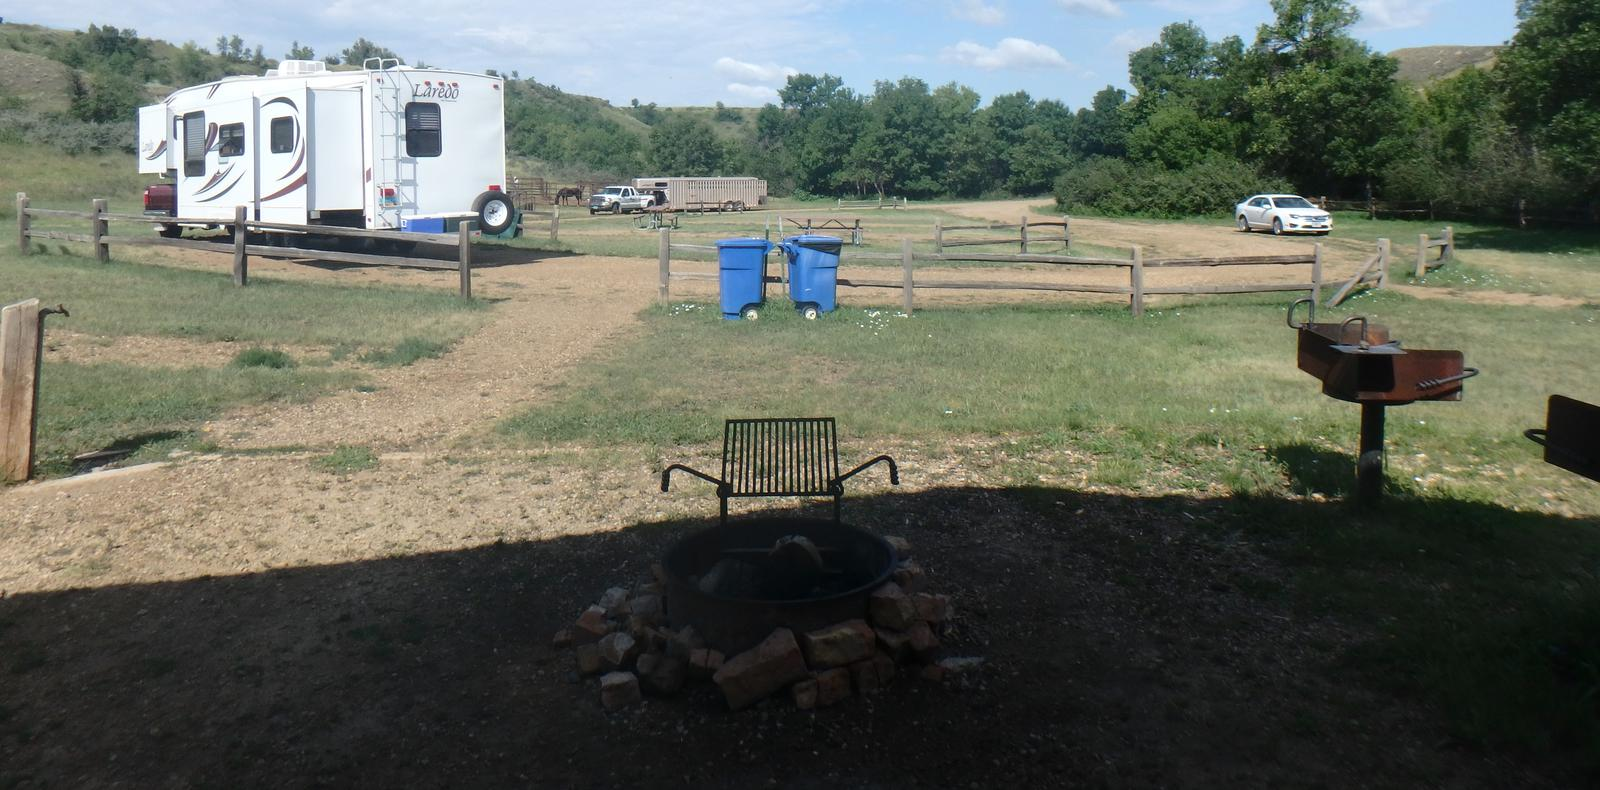 Site looking east from the picnic area with fire pit and grill int he forefront. Site from the picnic area.